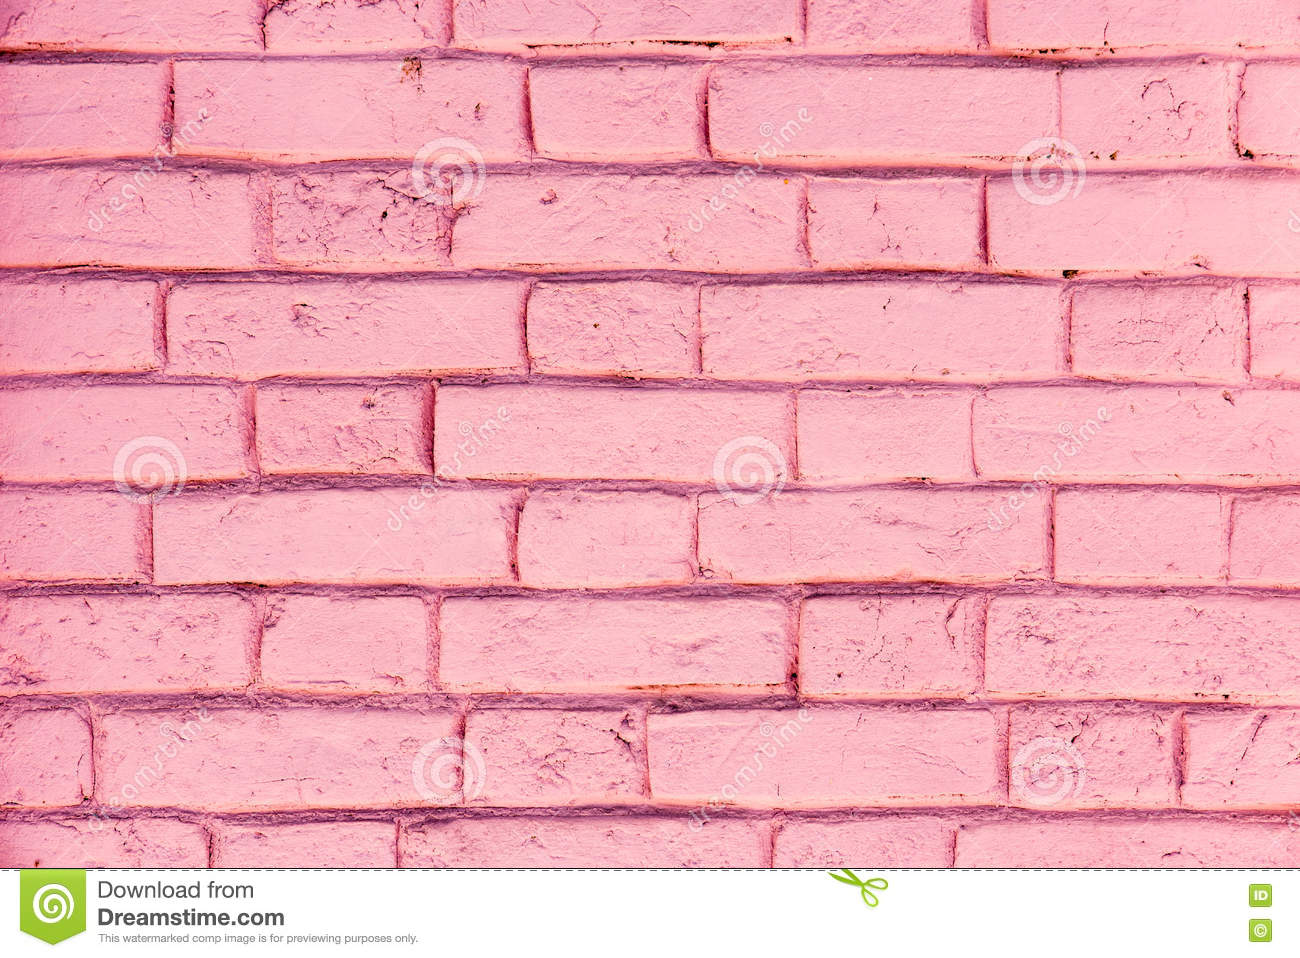 Pink Brick Wall Texture Royalty-Free Stock Image